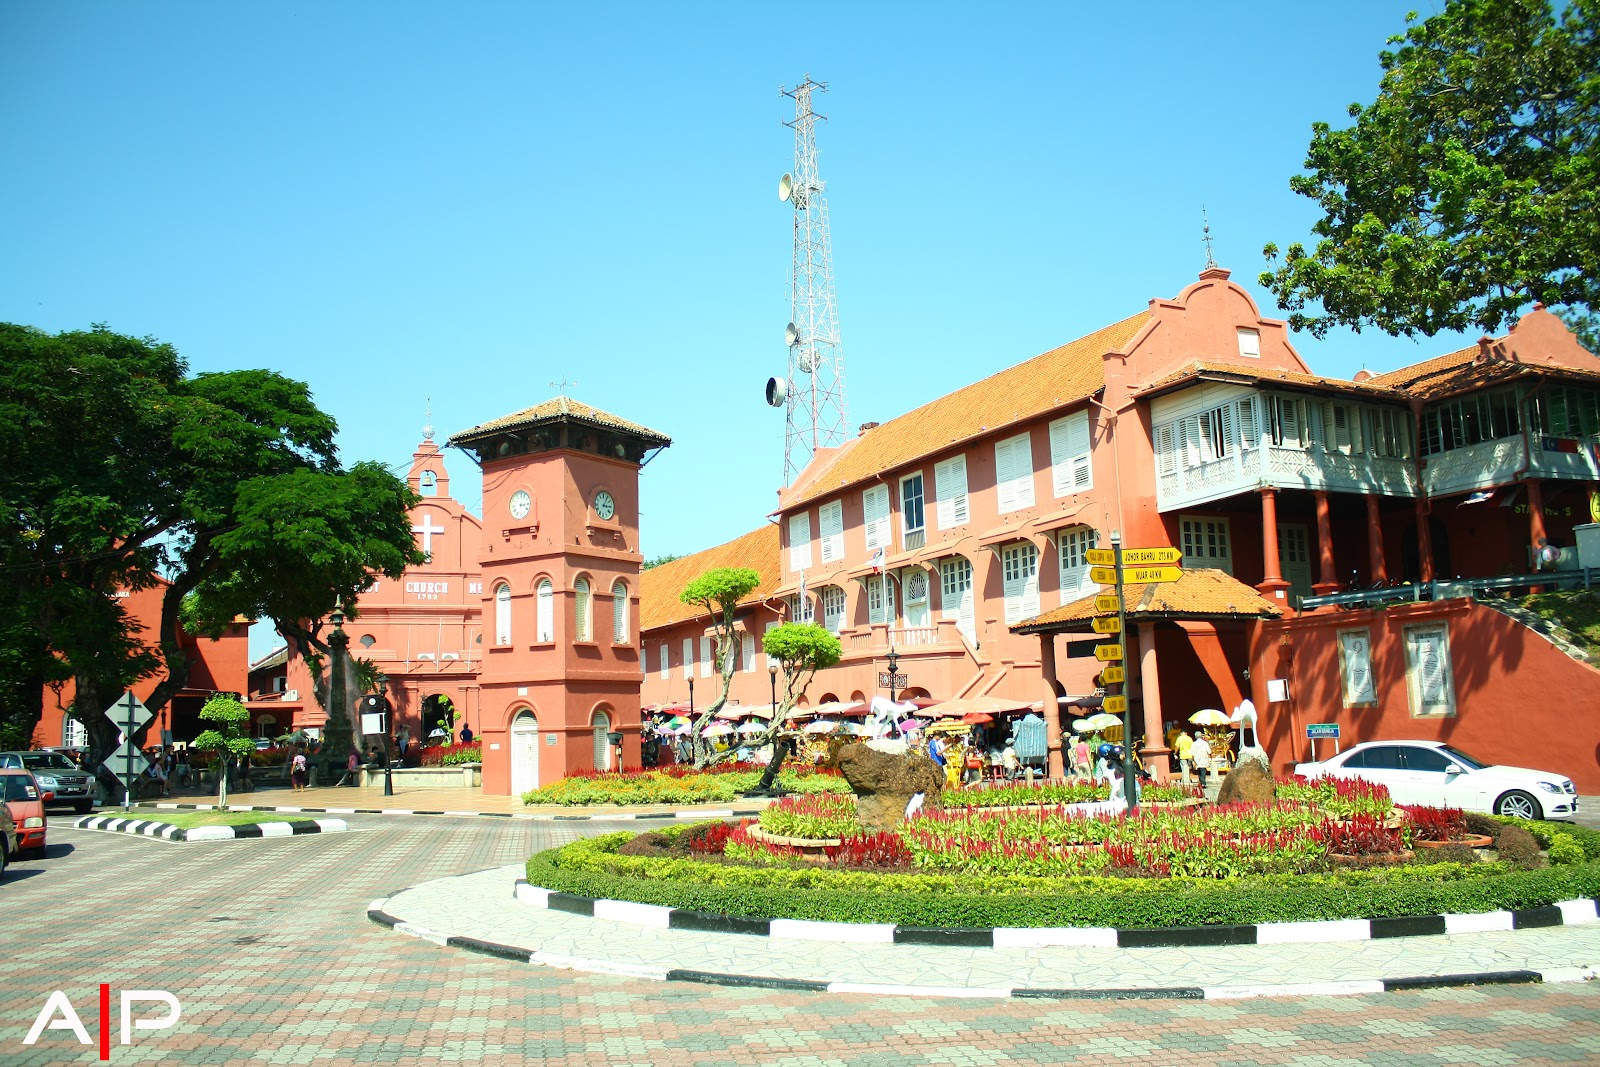 essay interesting place malacca Melaka nightlife – 10 fun things to do in  but it is a place where different malacca nightlife spots are housed in  you might be interesting in knowing about.